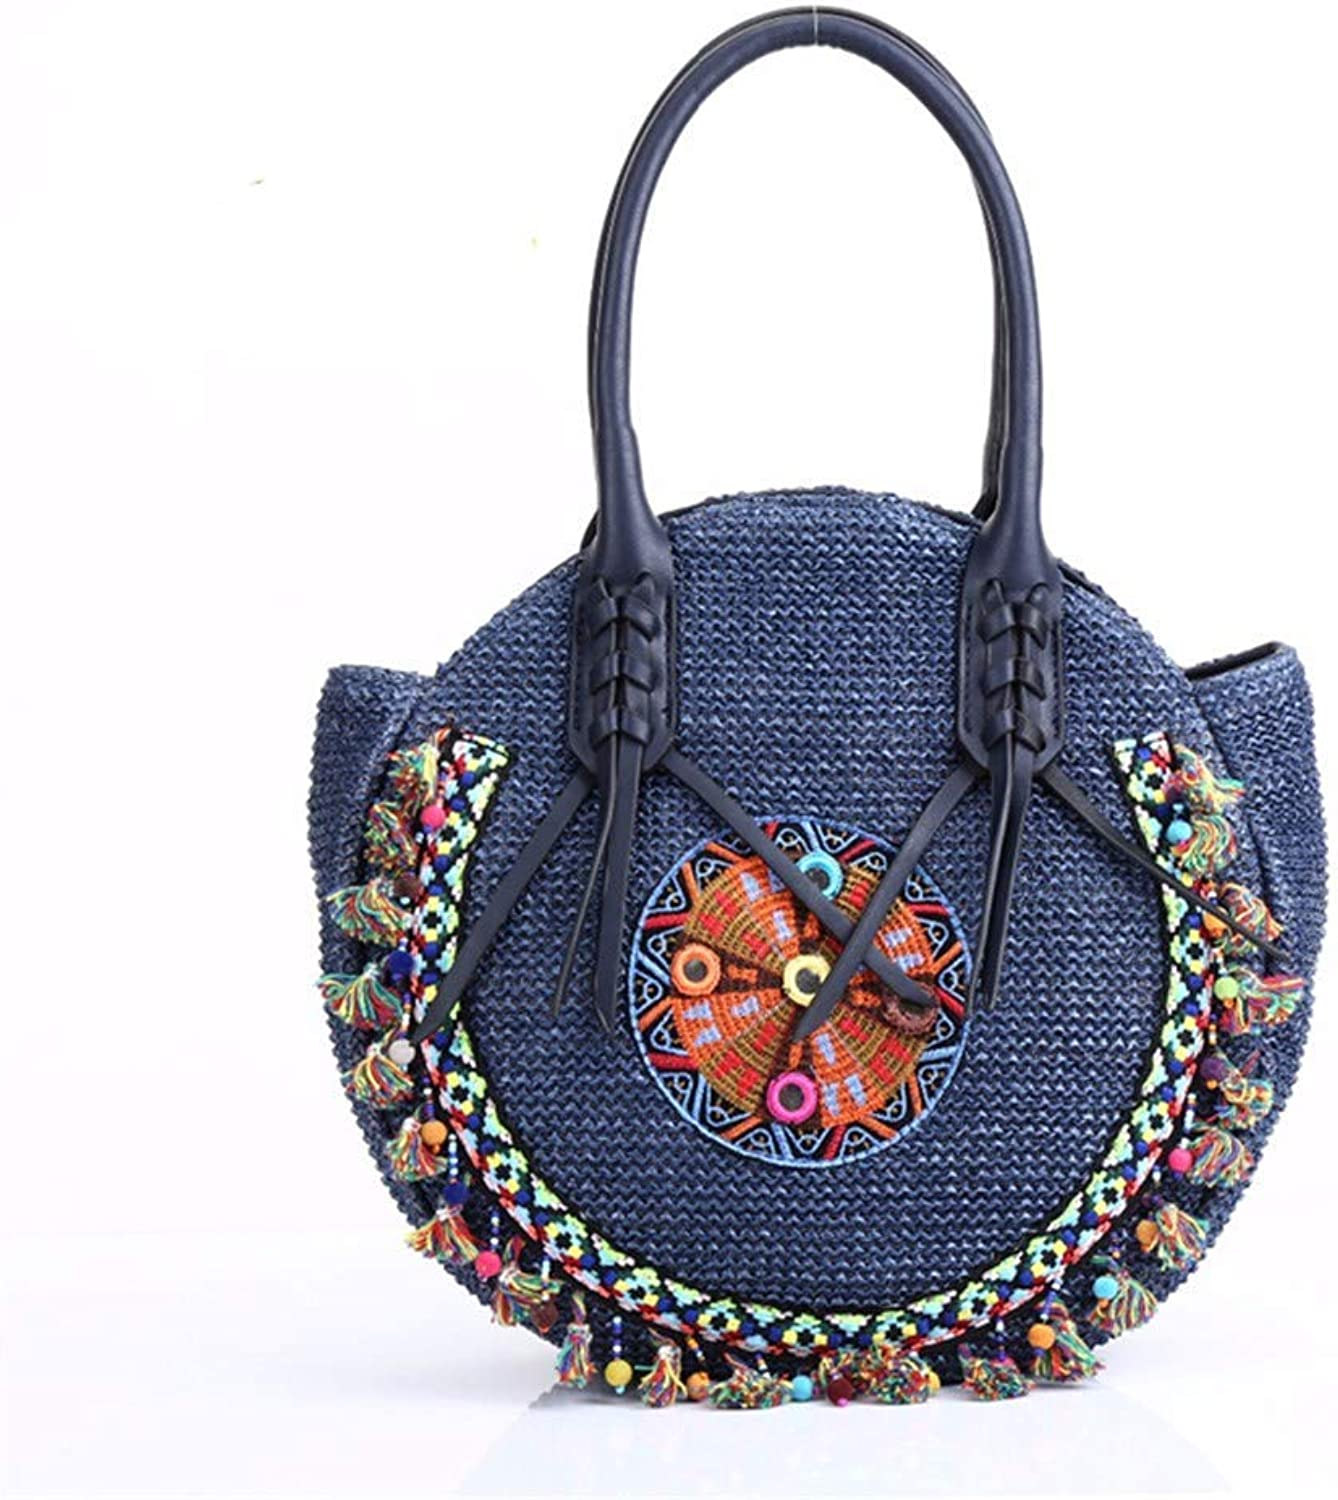 Ladies Handbag Bag Lady pp Beach Straw Rounded Handbag Gypsy Women Tote Ethnic Shoulder Crossbody, blueee